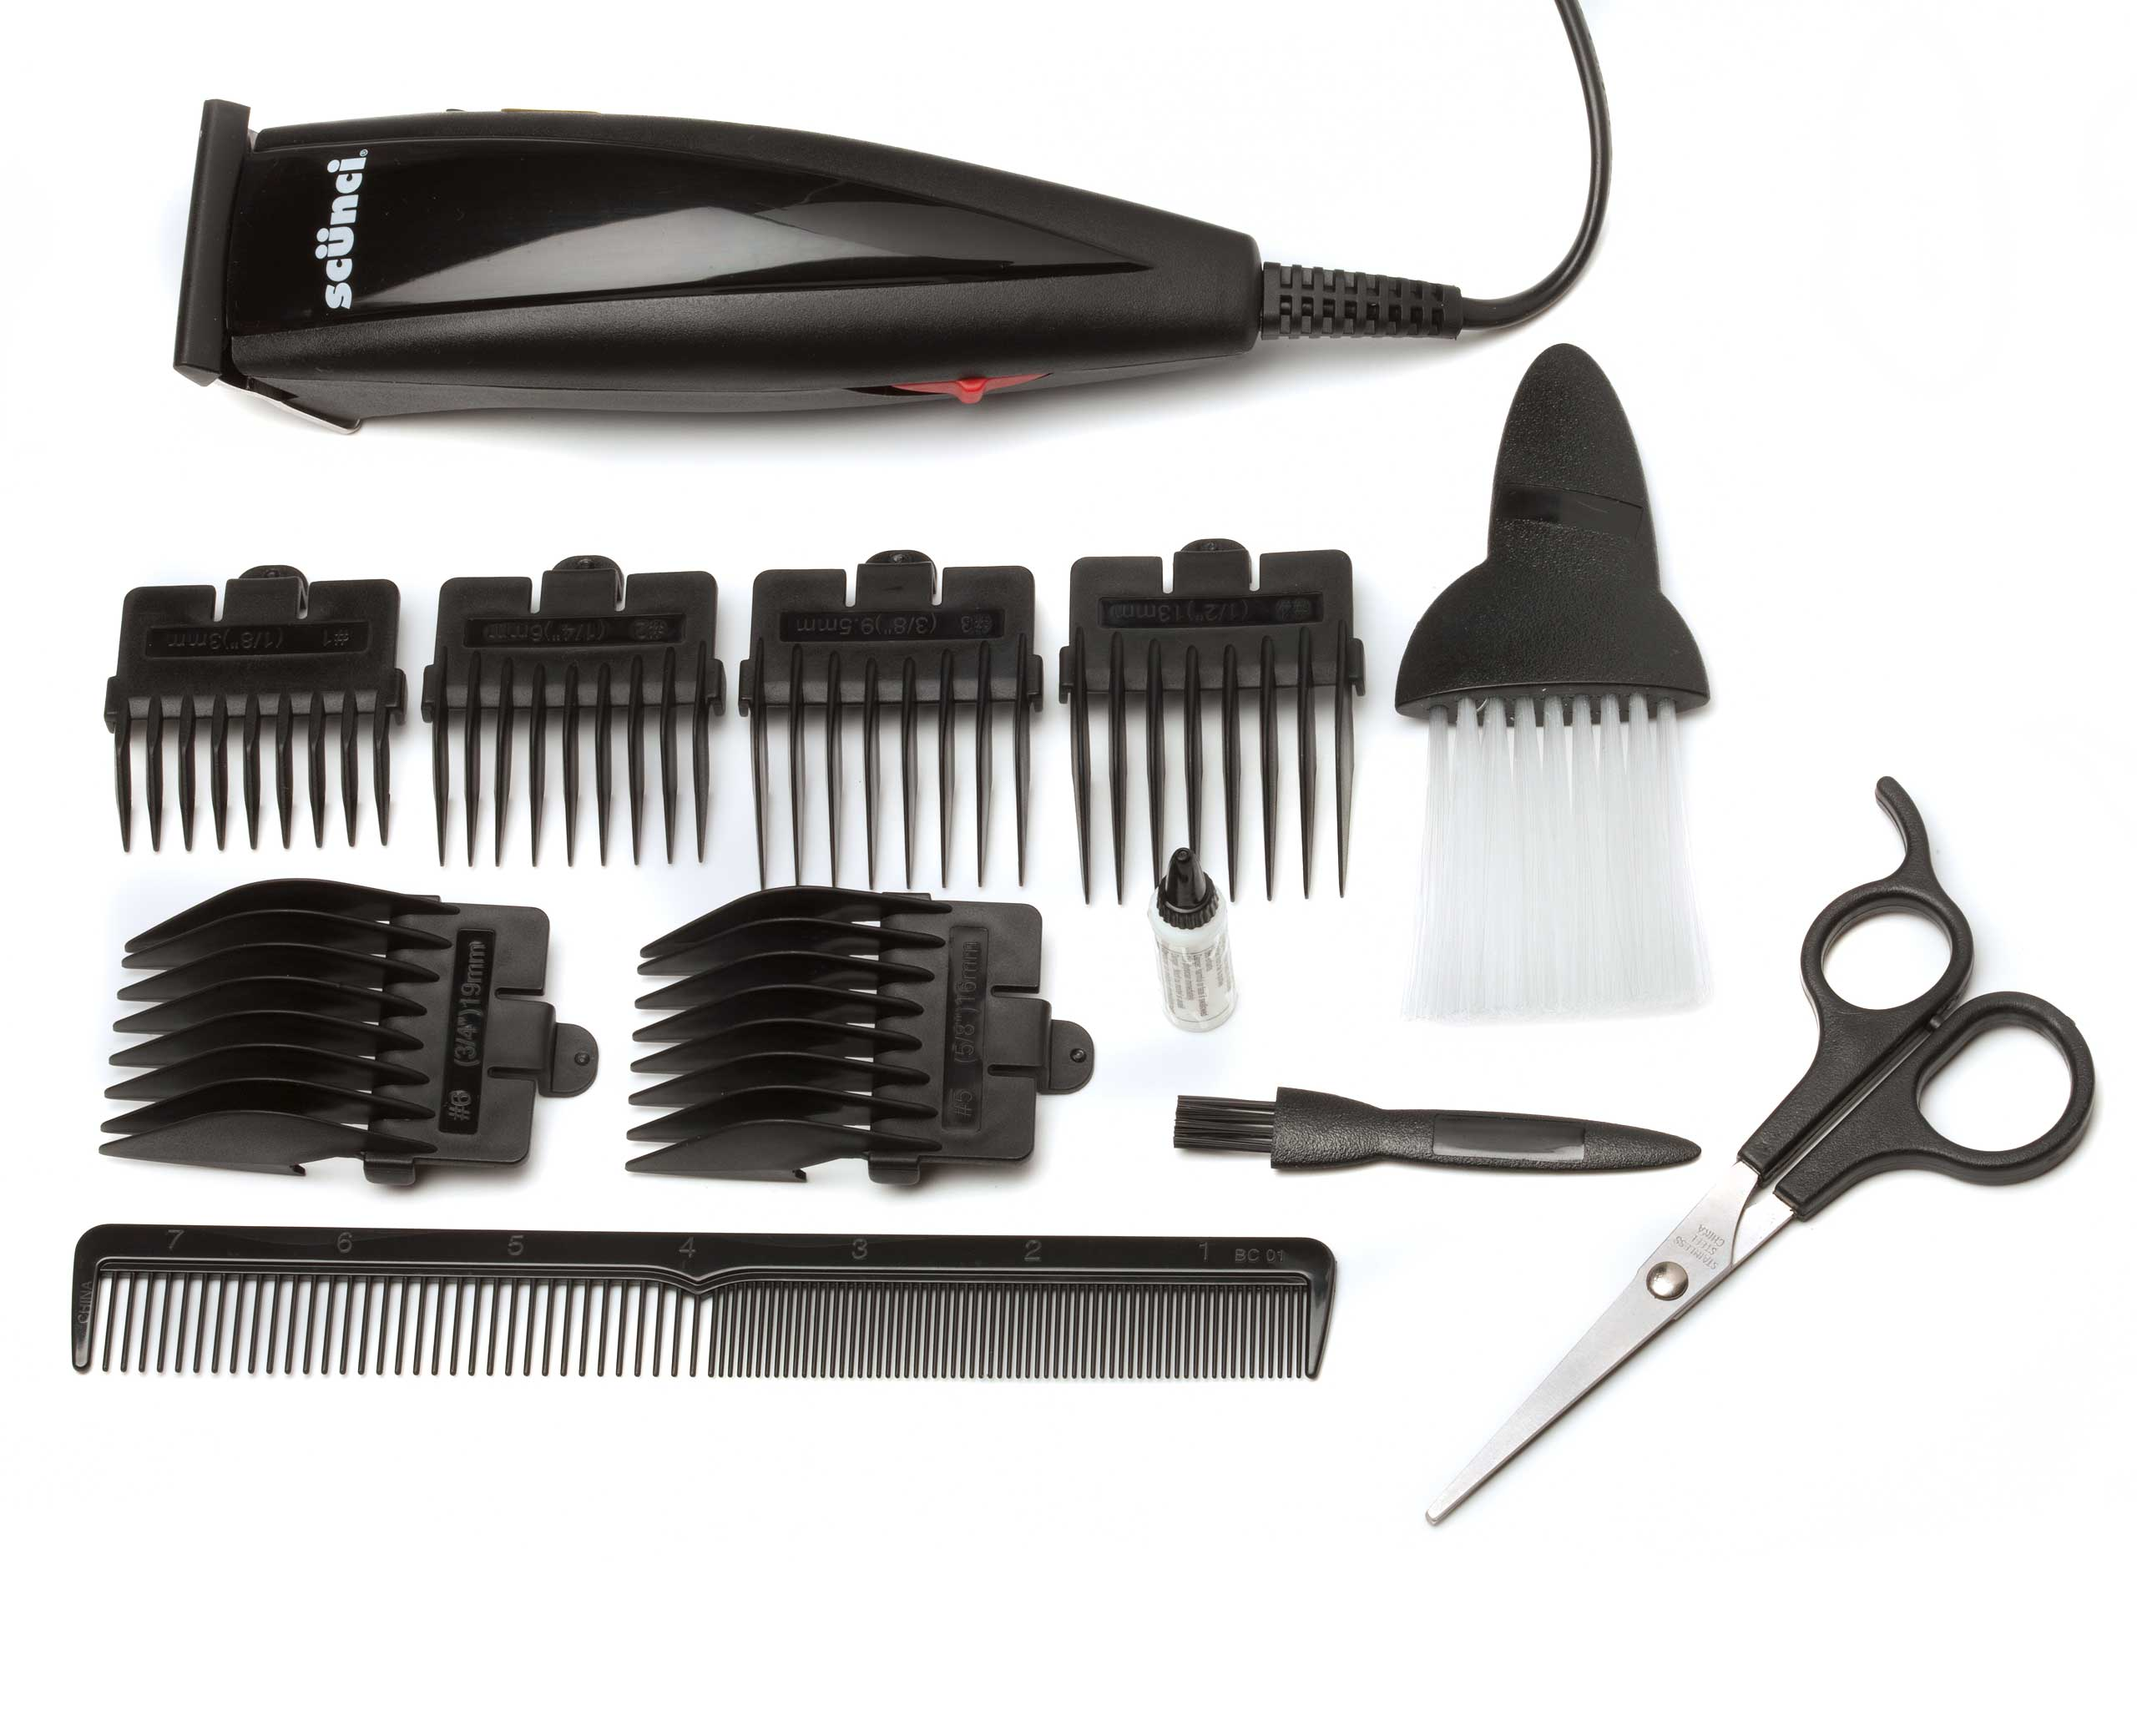 Hair Cutting Kit